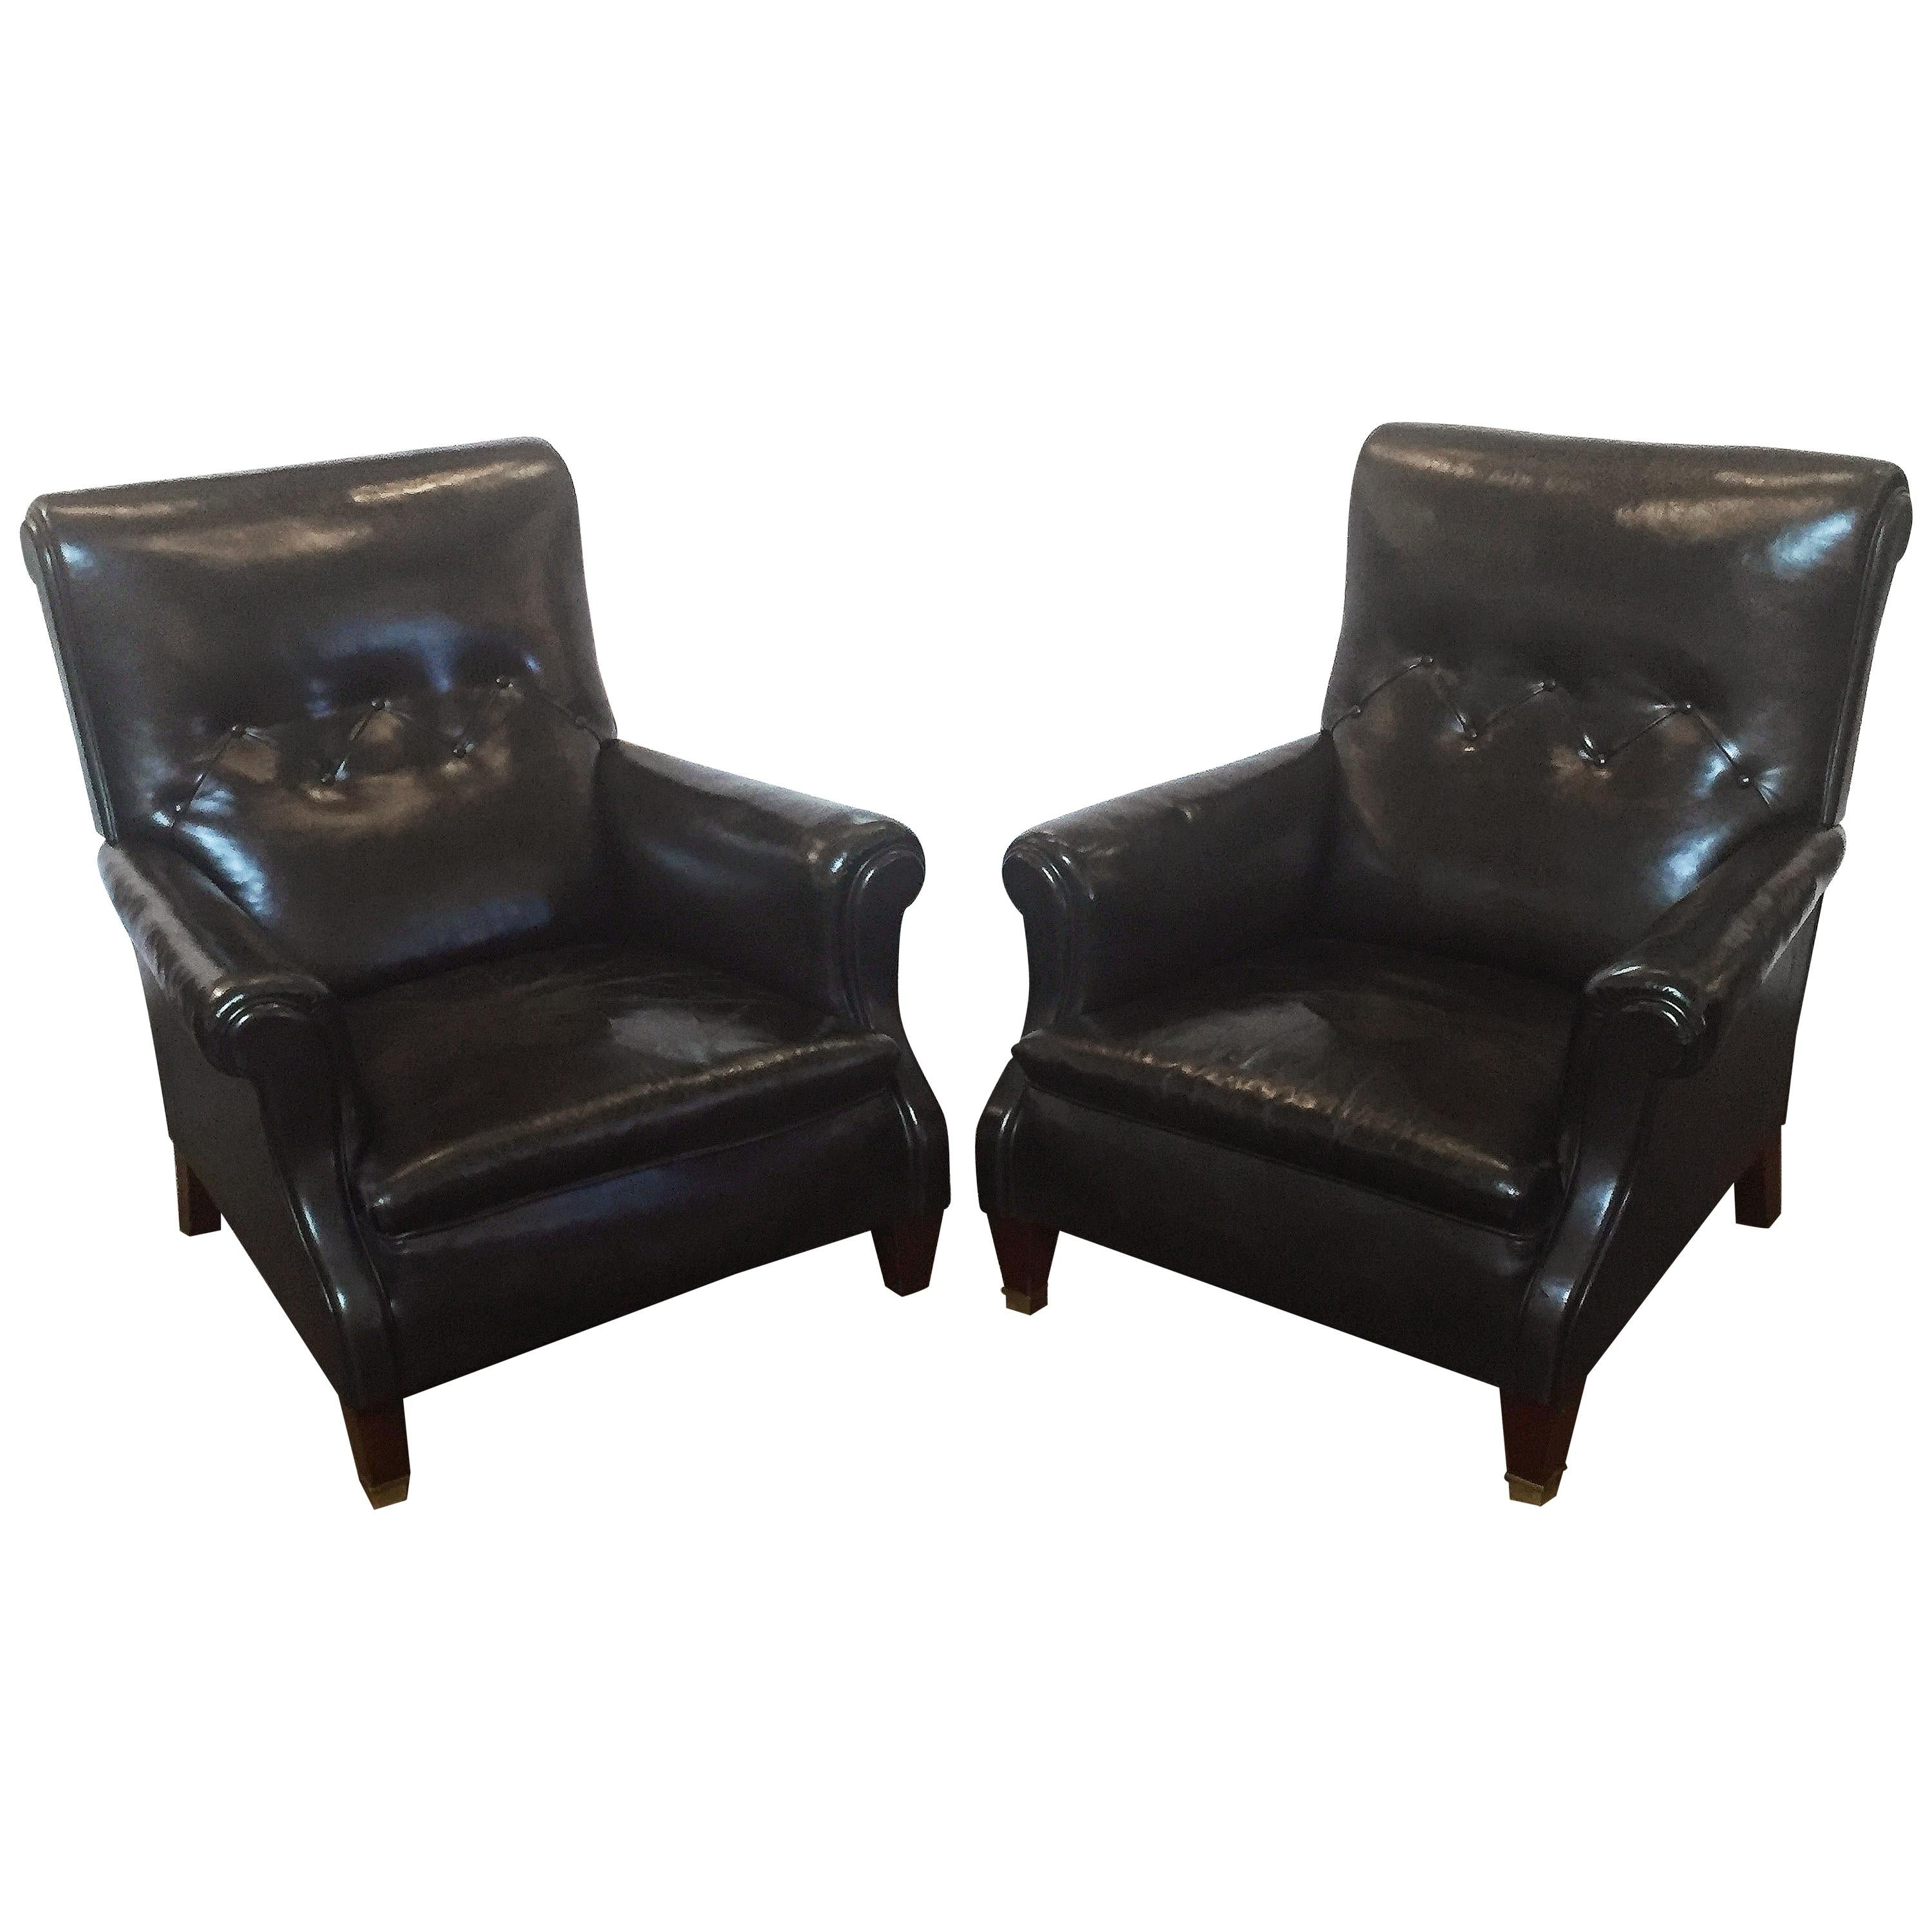 English Button Leather Club Chairs From The Edwardian Era, Individually  Priced For Sale